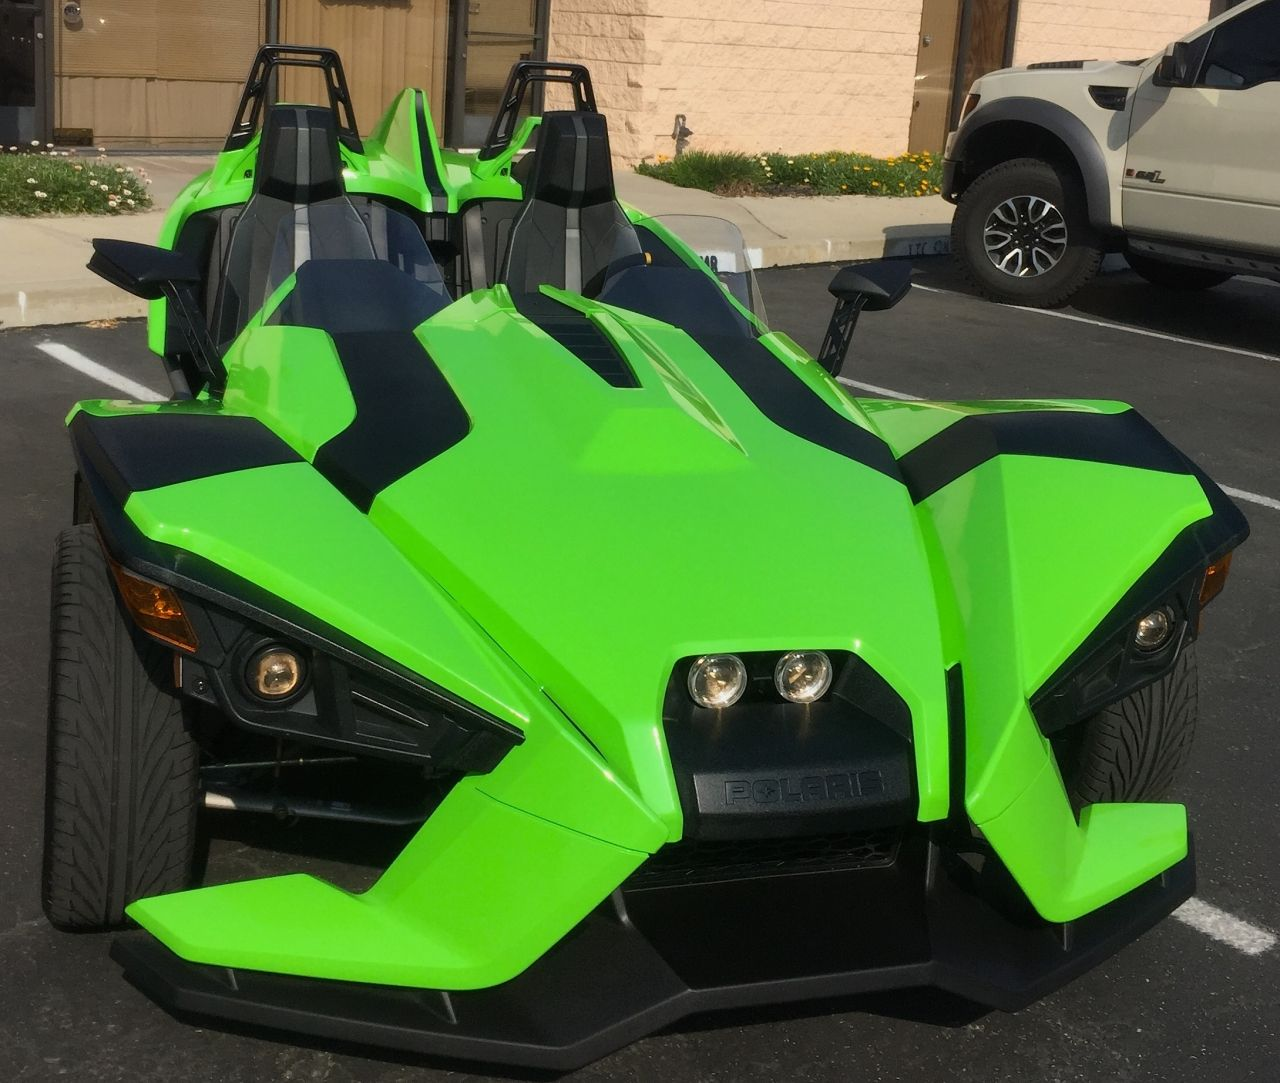 ITS GREEN! This Is My Favorite Polaris Slingshot Wrap That